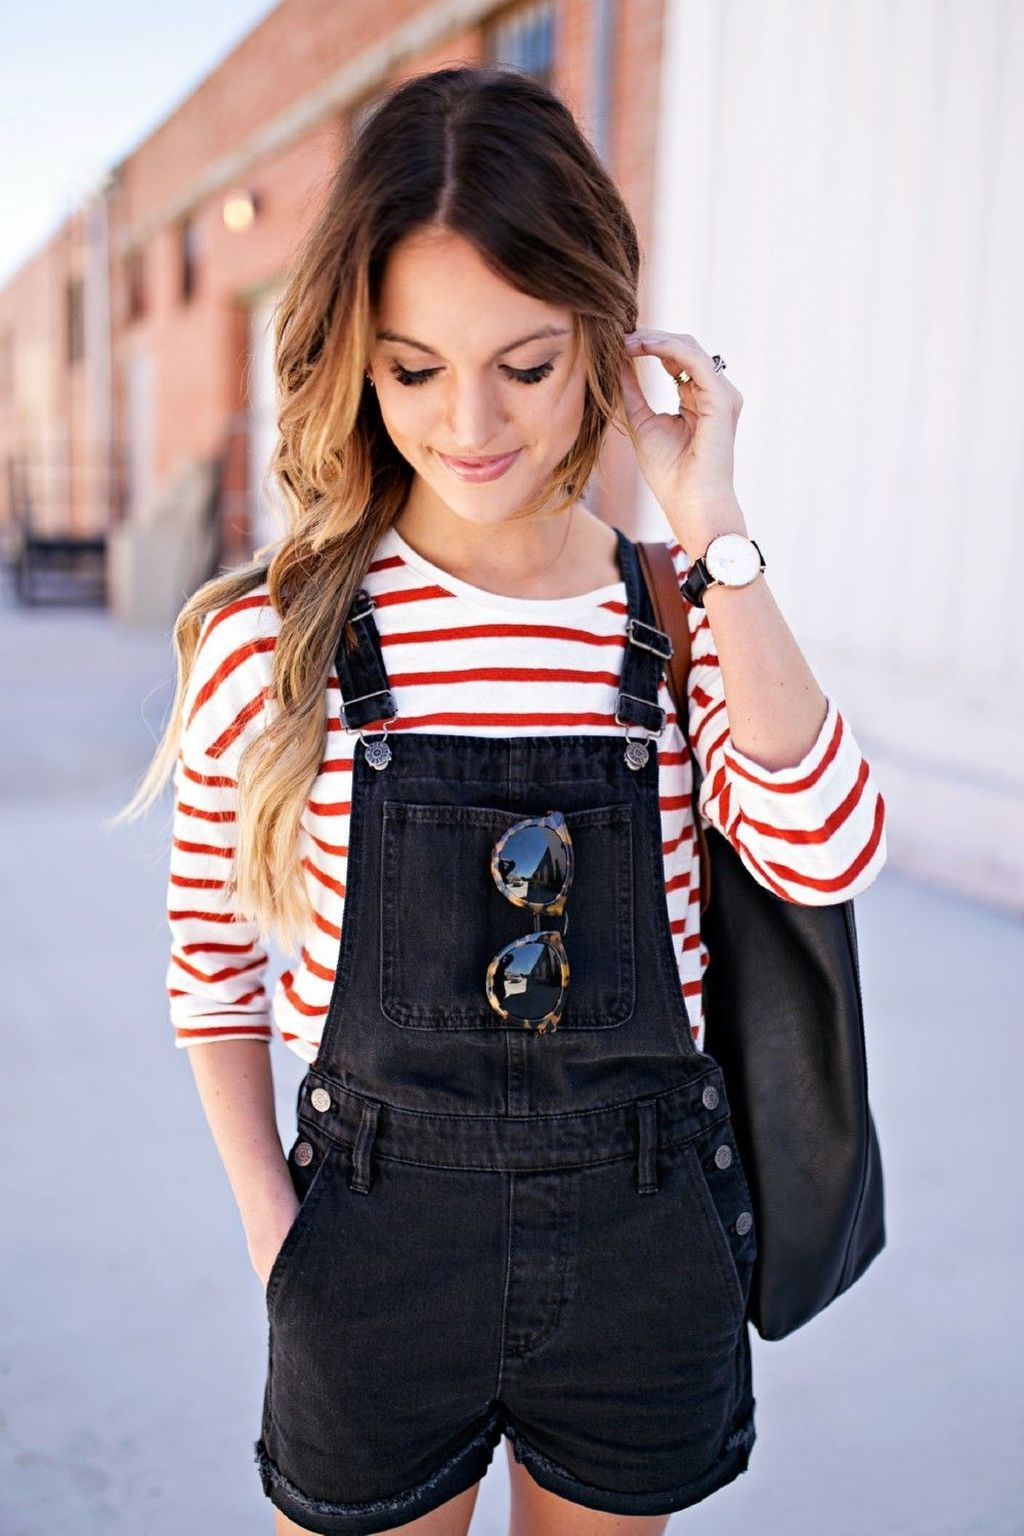 Trend Fashionist: 45 Trendy Teen Fashion 2018 Ideas For Spring